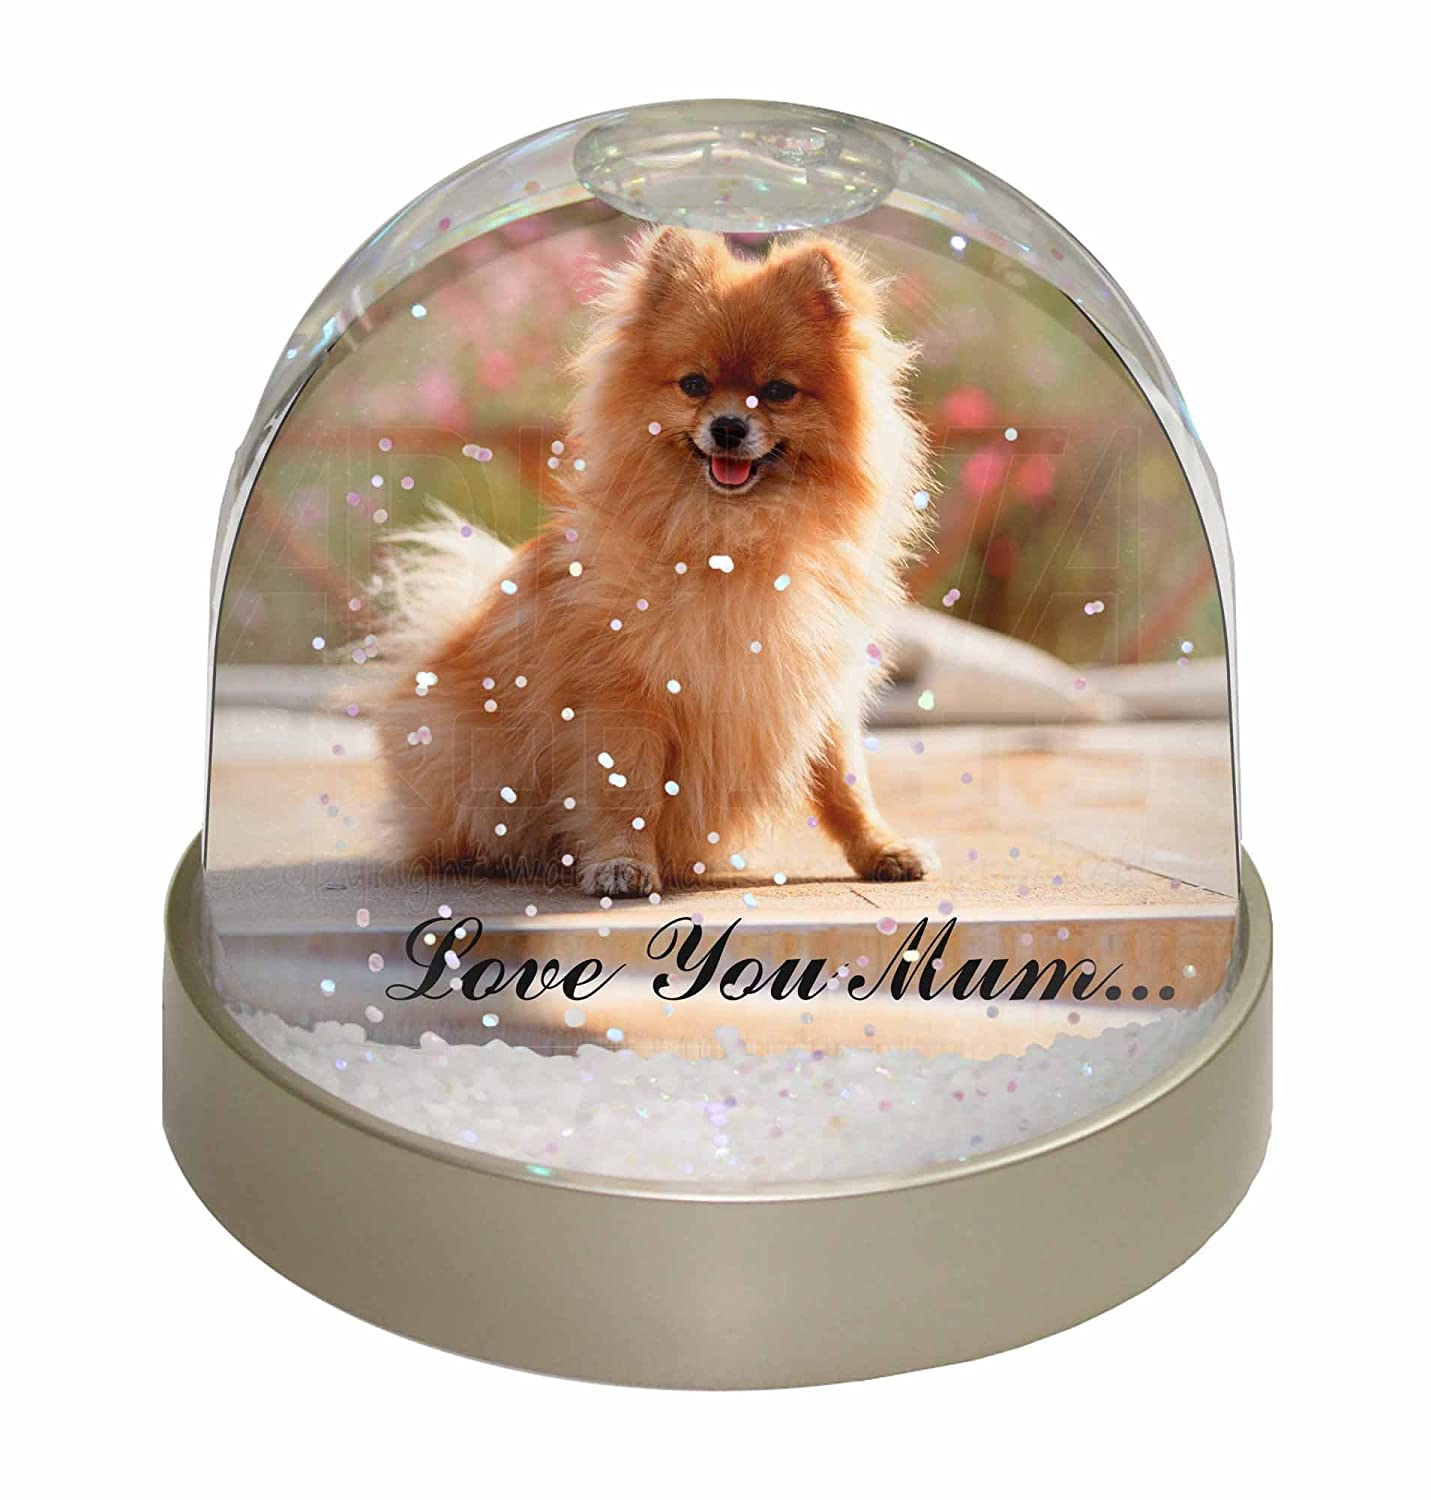 Advanta Pomeranian Dog 'Love You Mum' Photo Snow Globe Waterball Stocking Filler Gift, Multi-Colour, 9.2 x 9.2 x 8 cm Advanta Products AD-PO89lymGL